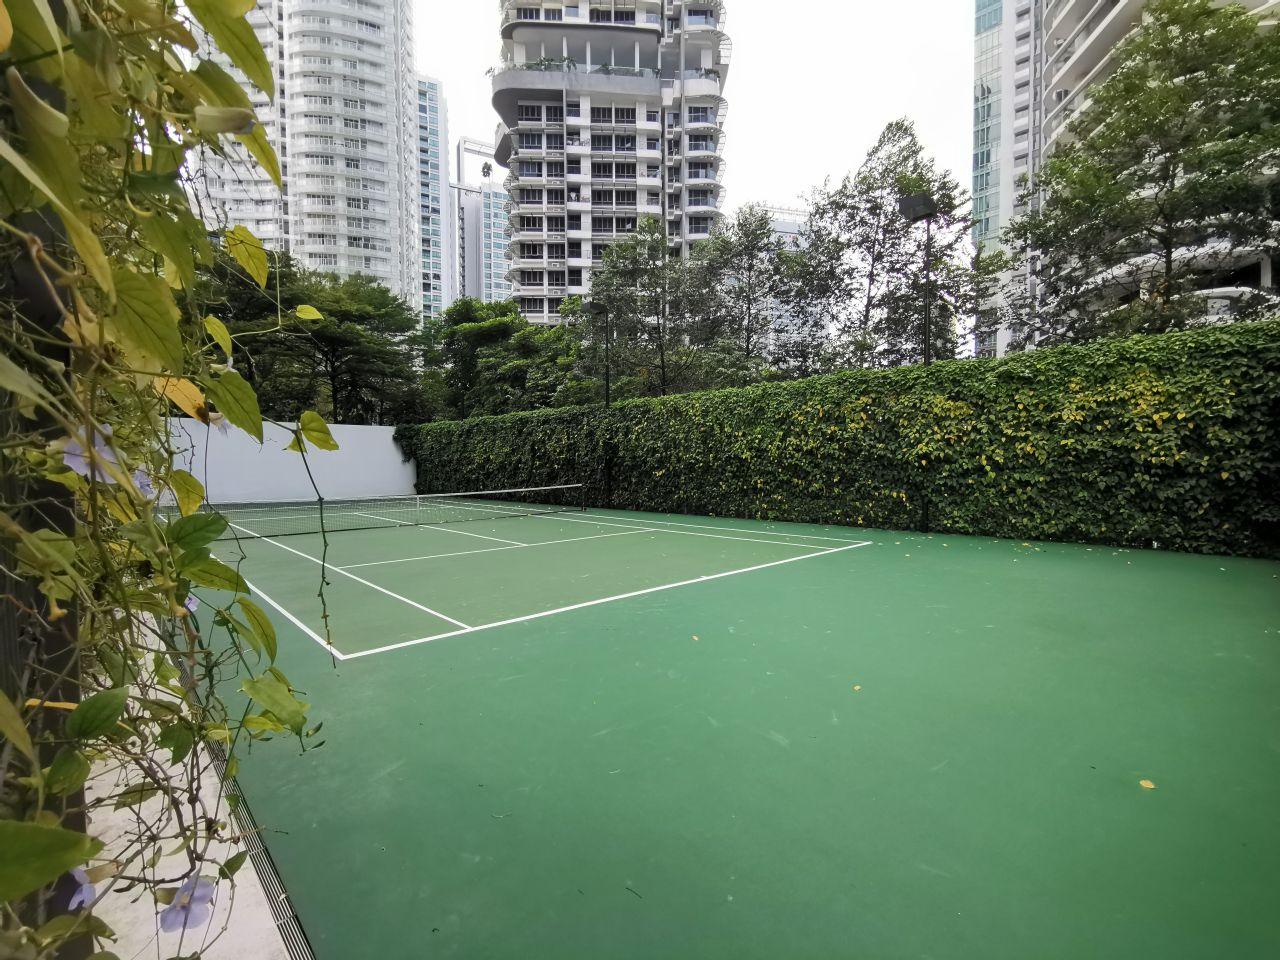 8 st thomas tennis court